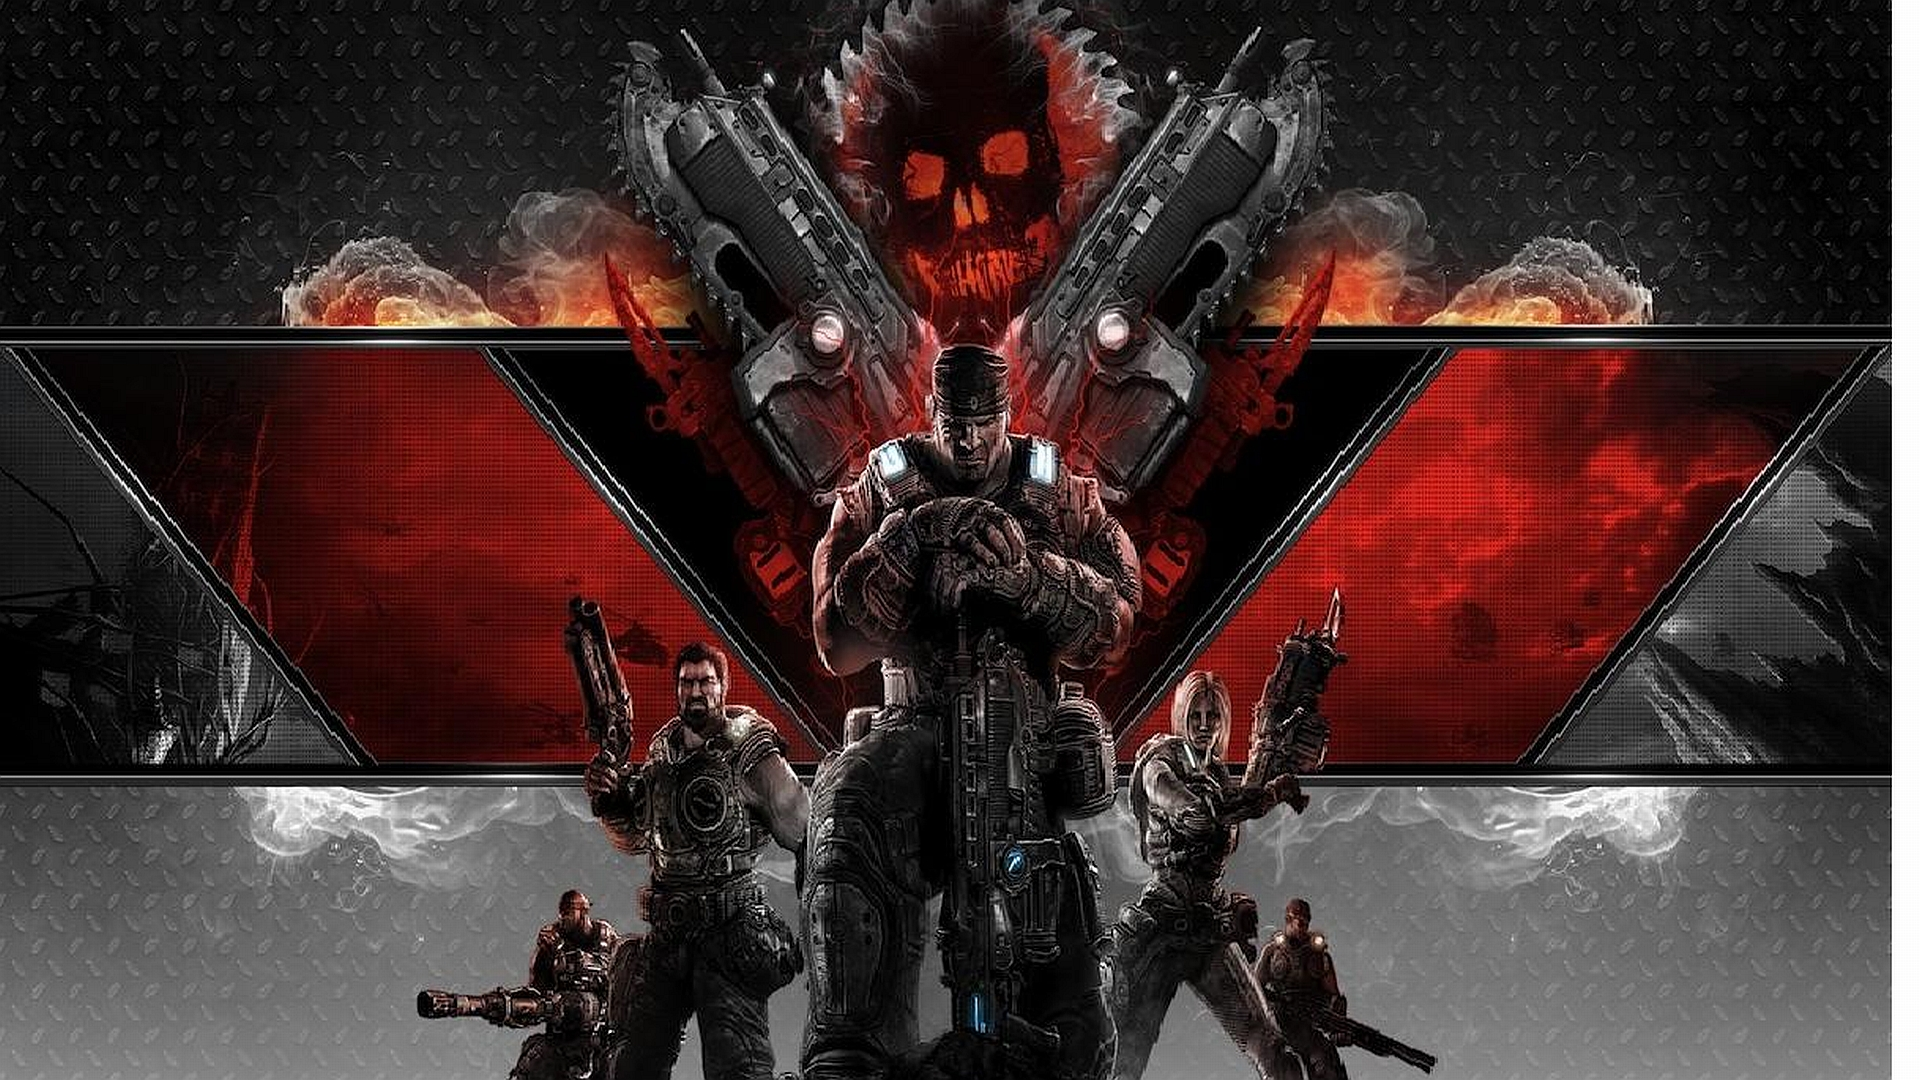 gears of war 3 backgrounds hd wallpapers Car Pictures 1920x1080